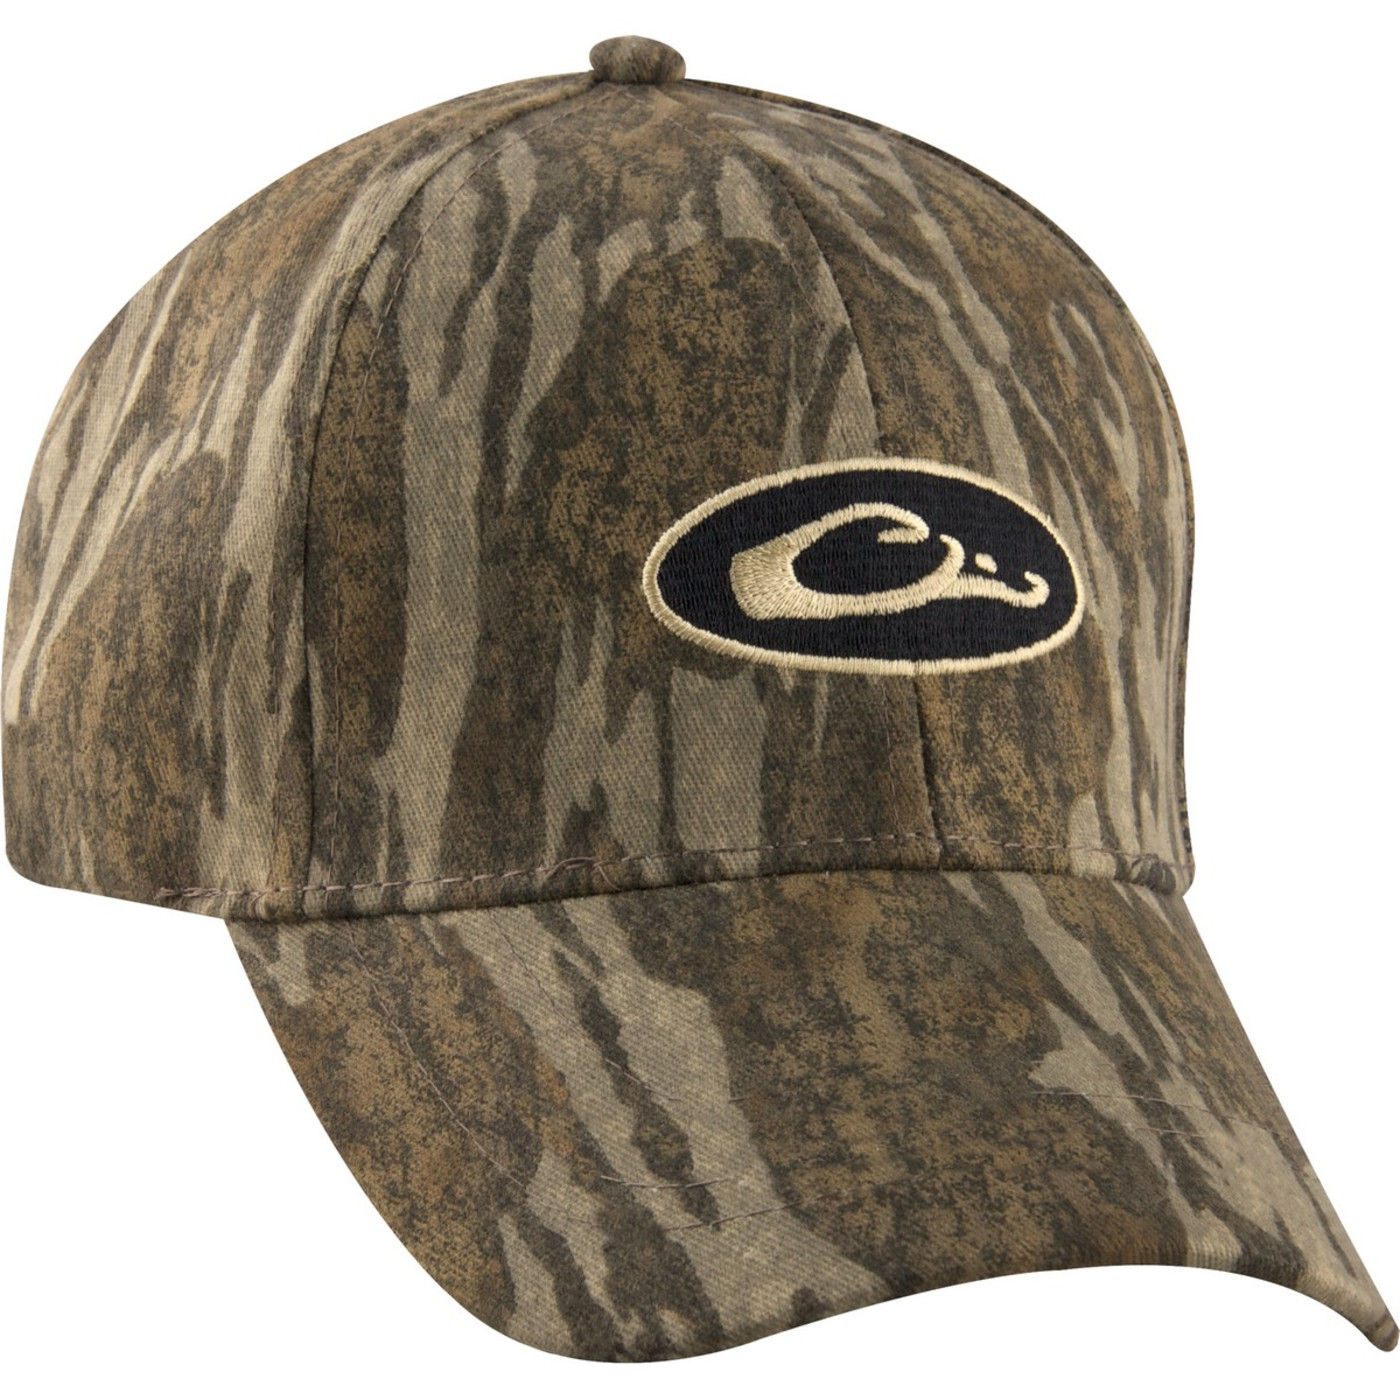 Drake Young Guns Waterproof Cap in Mossy Oak Bottomland Color